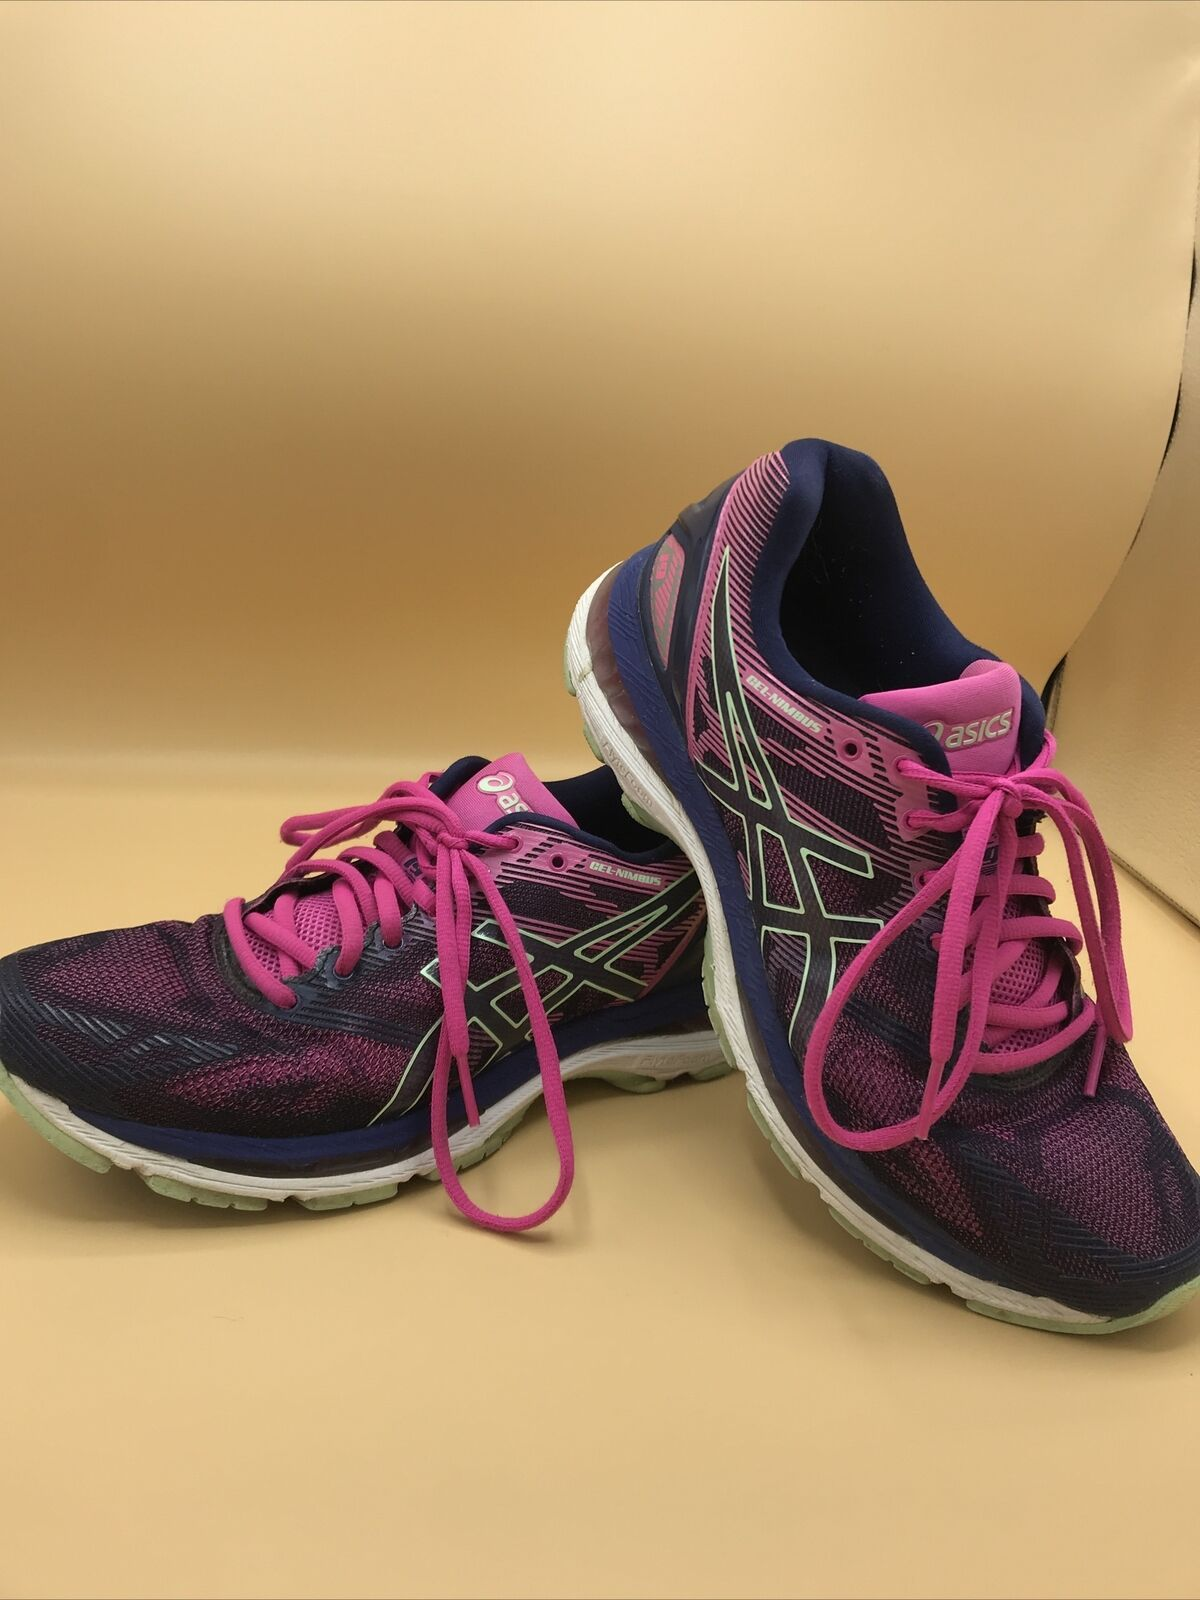 Primary image for Women's ASICS Gel Nimbus 19 T750N Purple/Pink/Green Athletic Shoes Women's 8.5